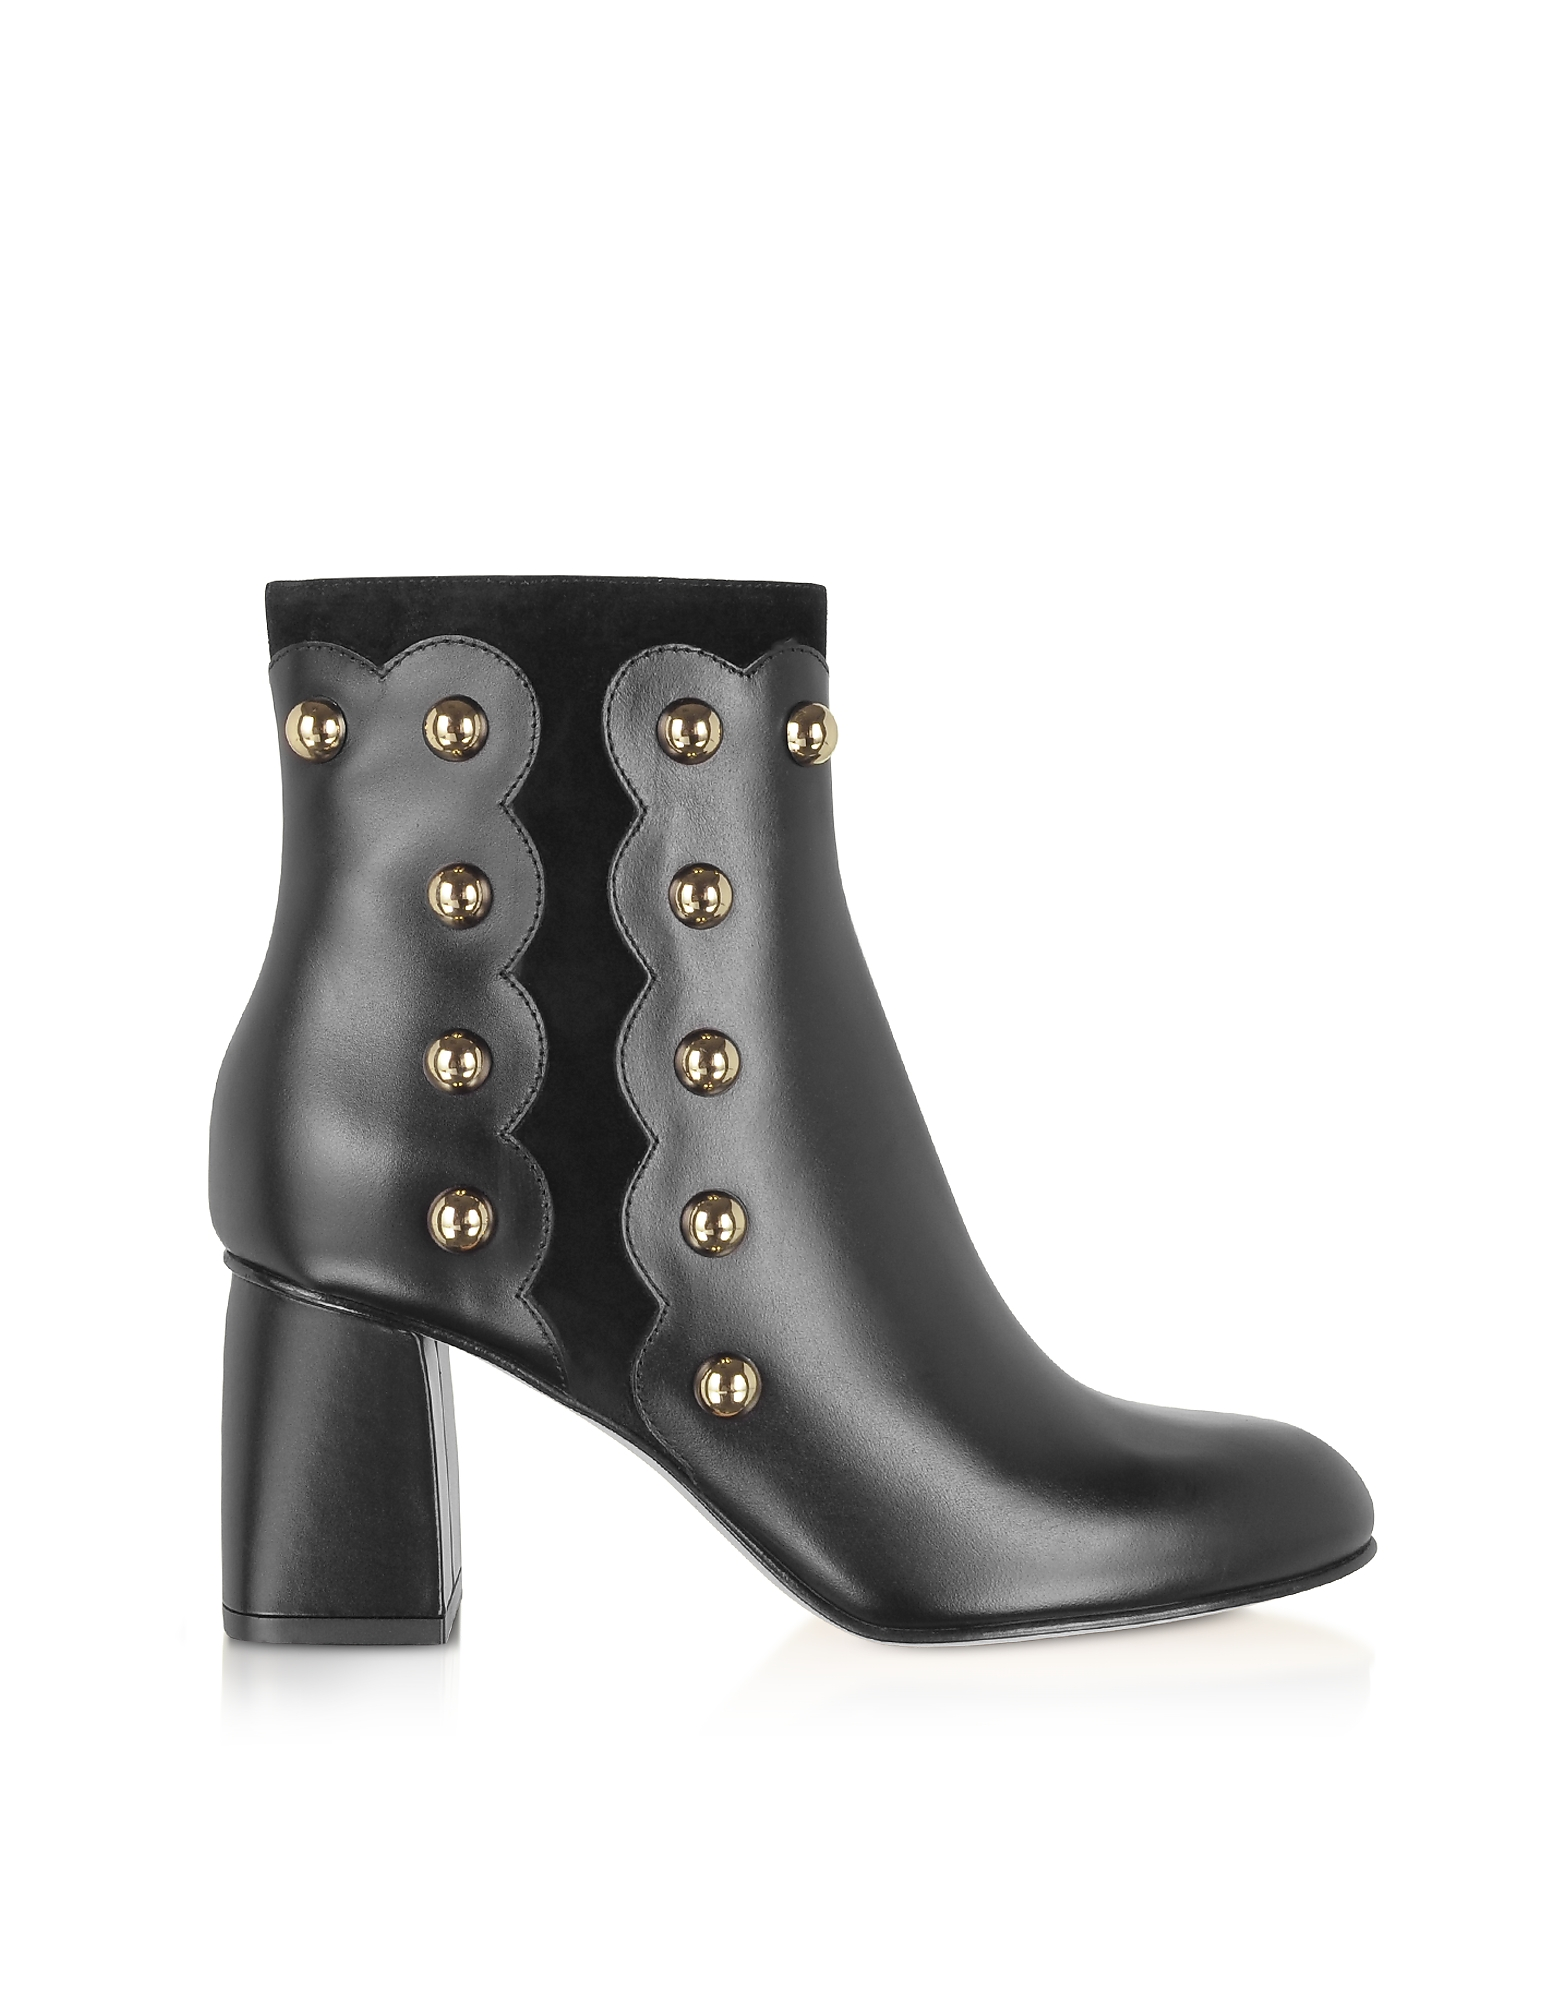 Black Leather and Suede Studded Boots